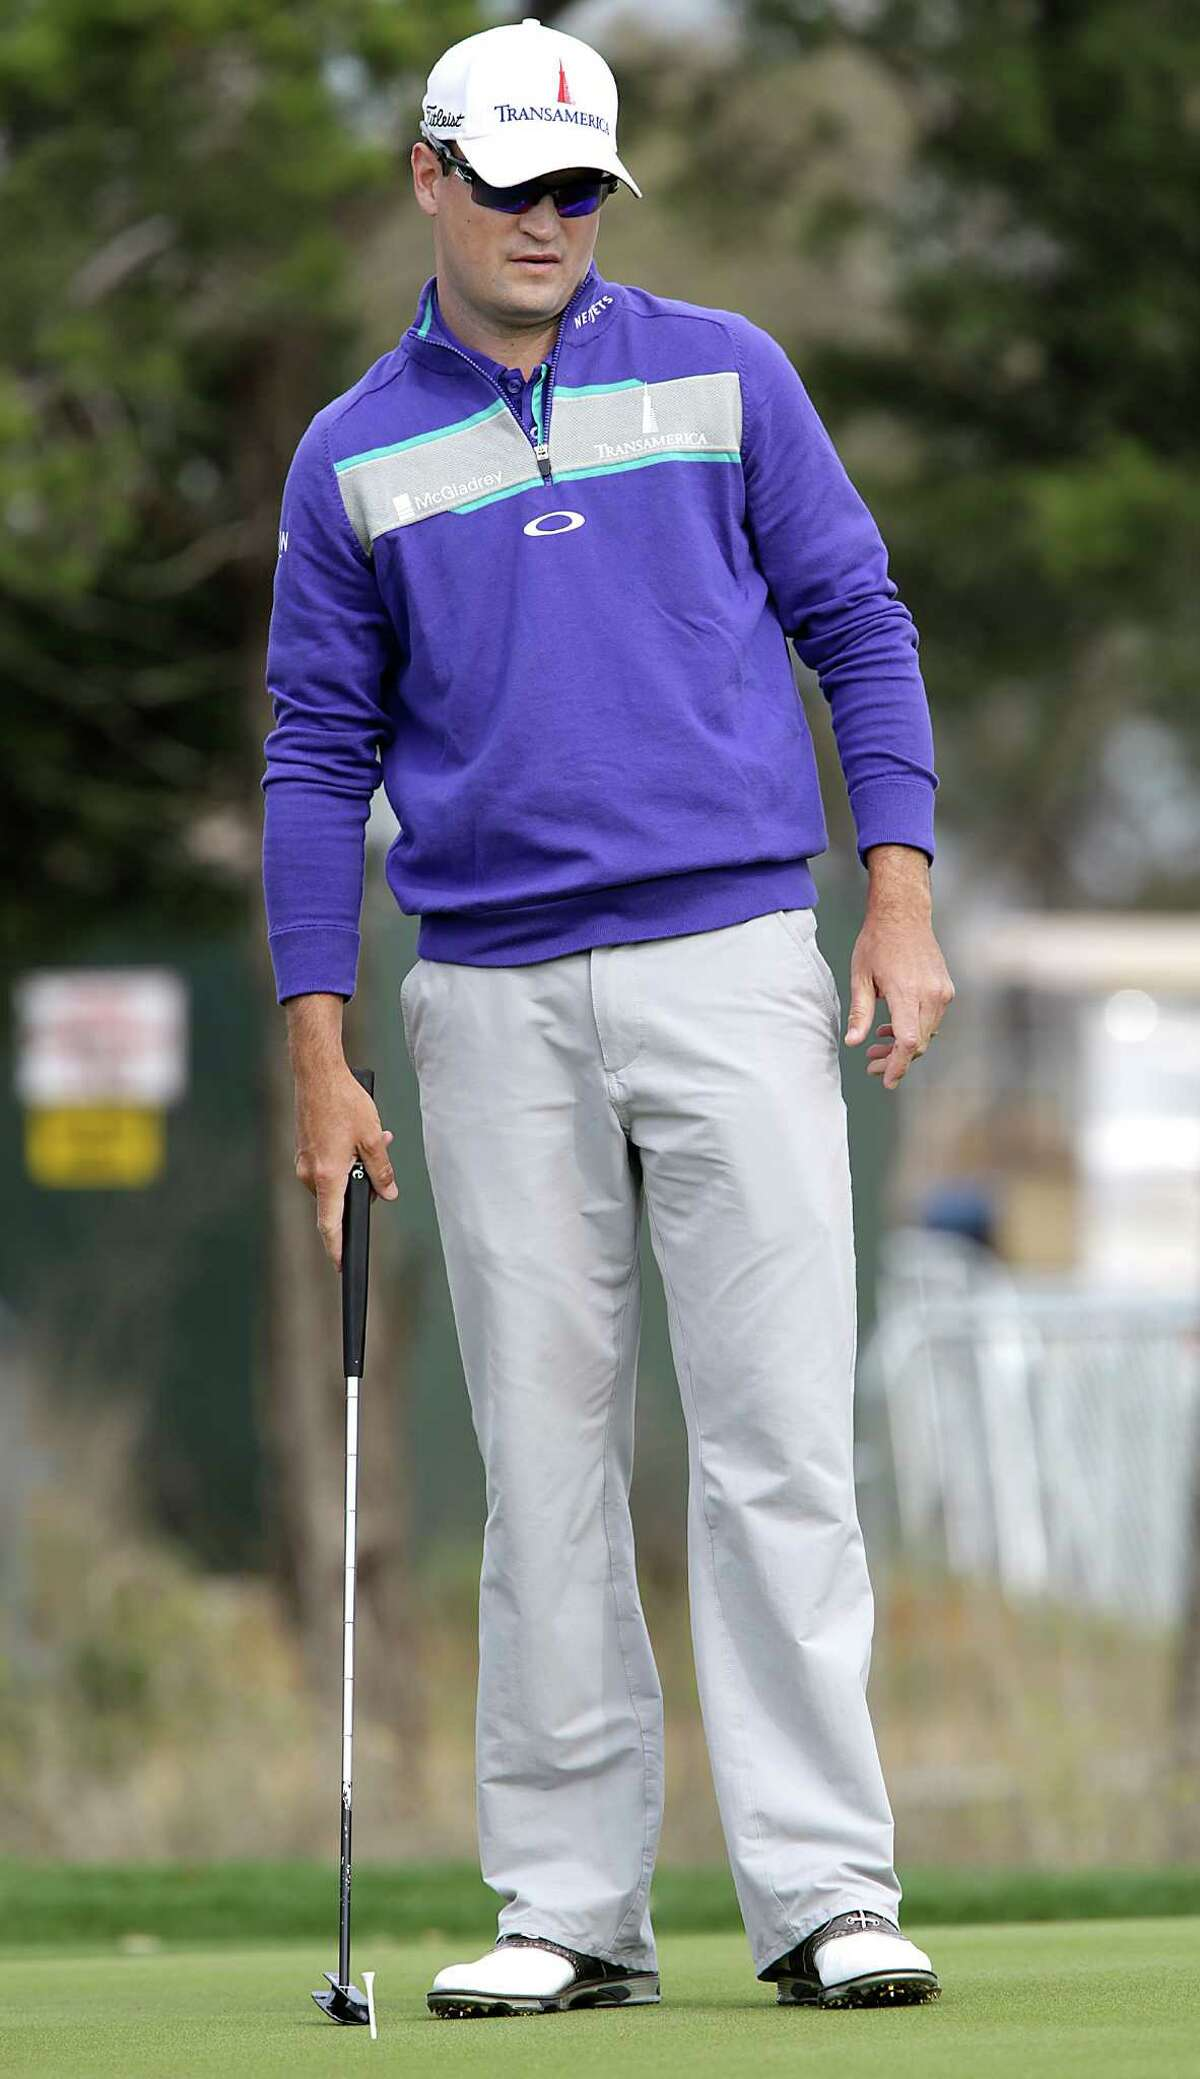 Zack Johnson watches a putt on the practice green as he prepared for the 2014 Valero Texas Open on the TPC San Antonio AT&T Oaks Course. Tuesday, March 25, 2014.